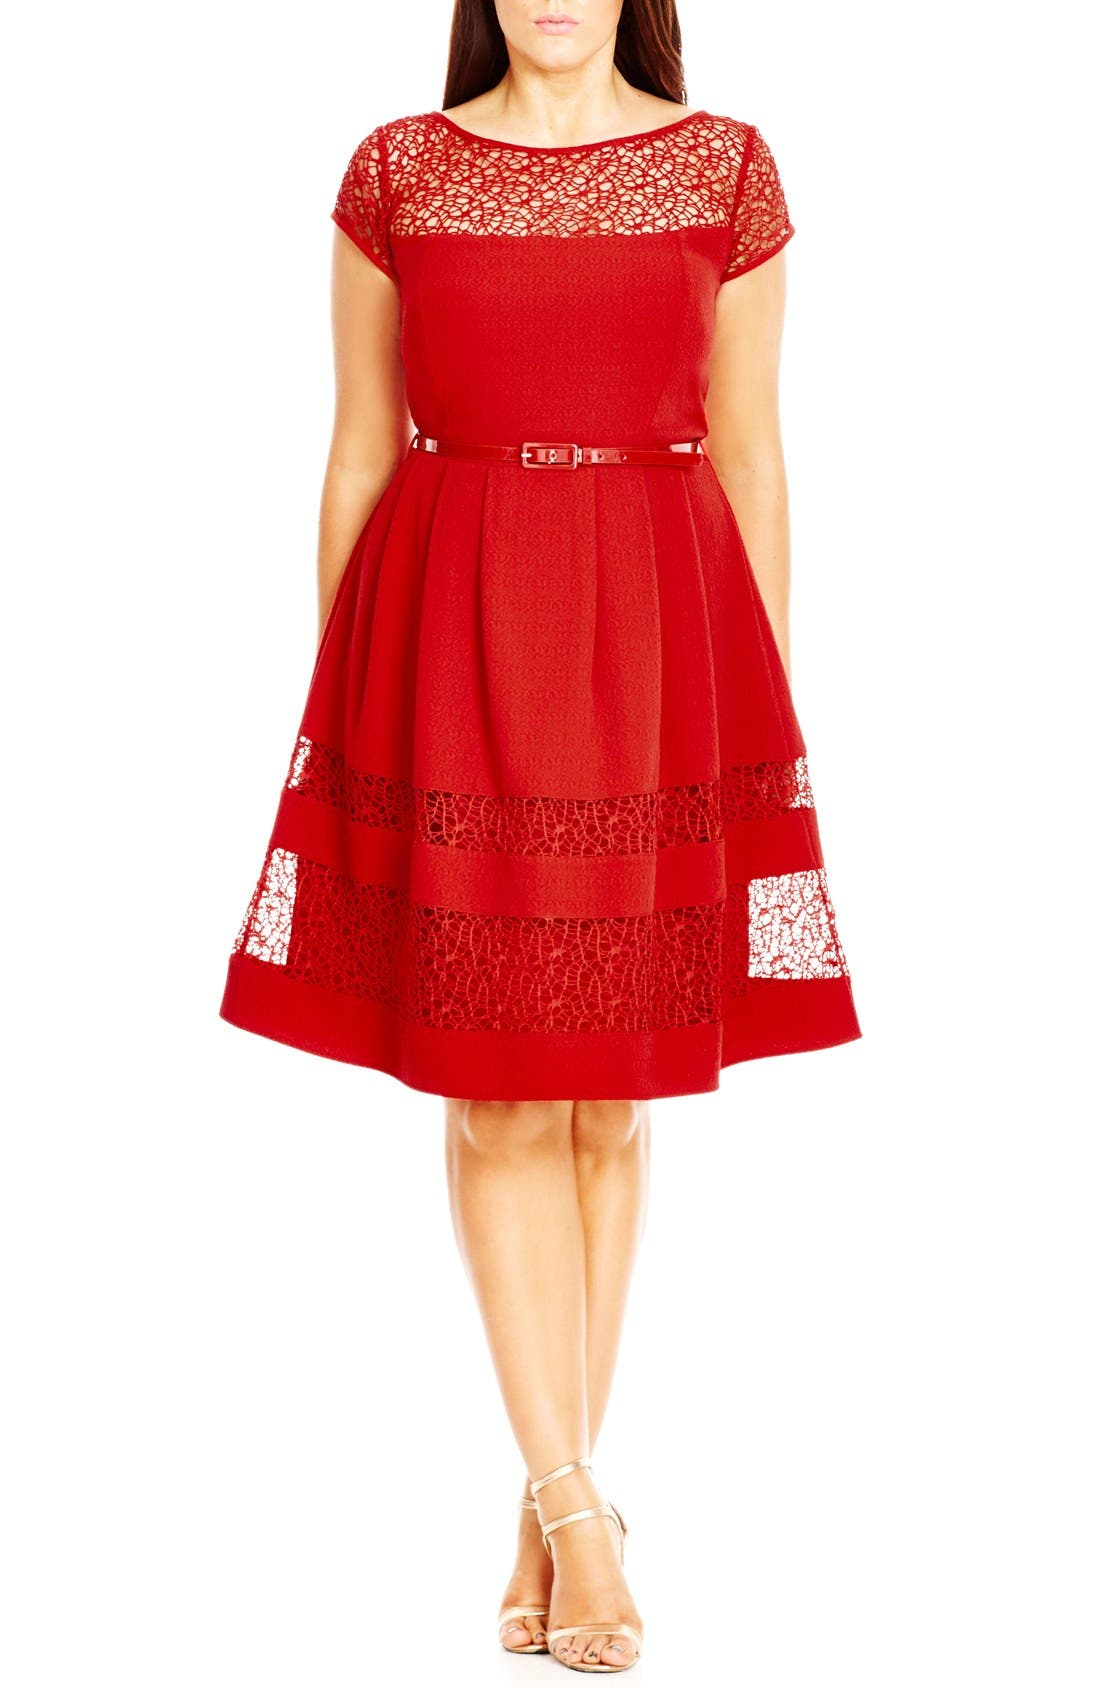 Main Image - City Chic Fit & Flare Dress with Delicate Lace Insets (Plus Size)